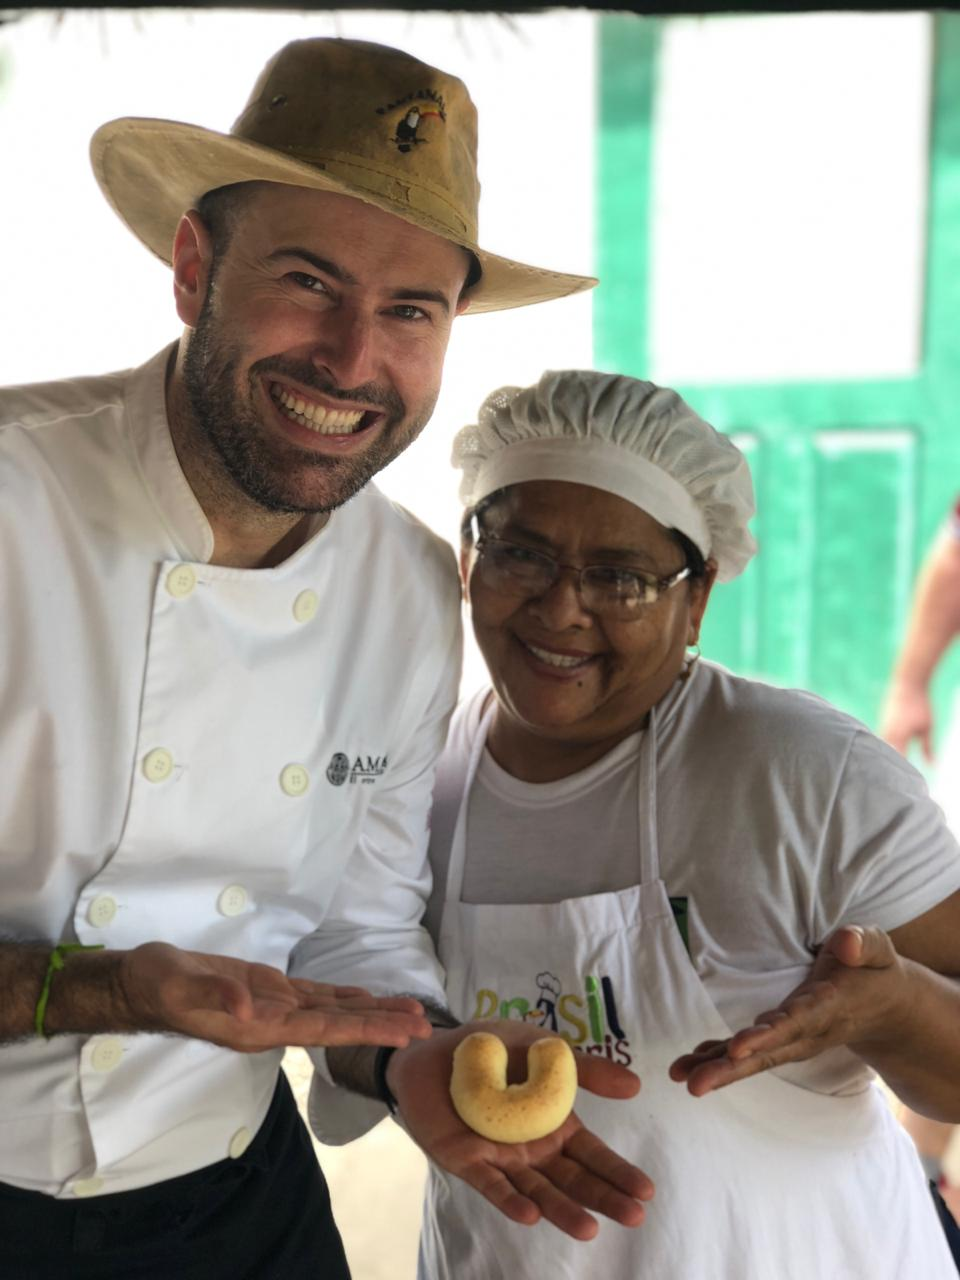 Pantanal Food Safaris